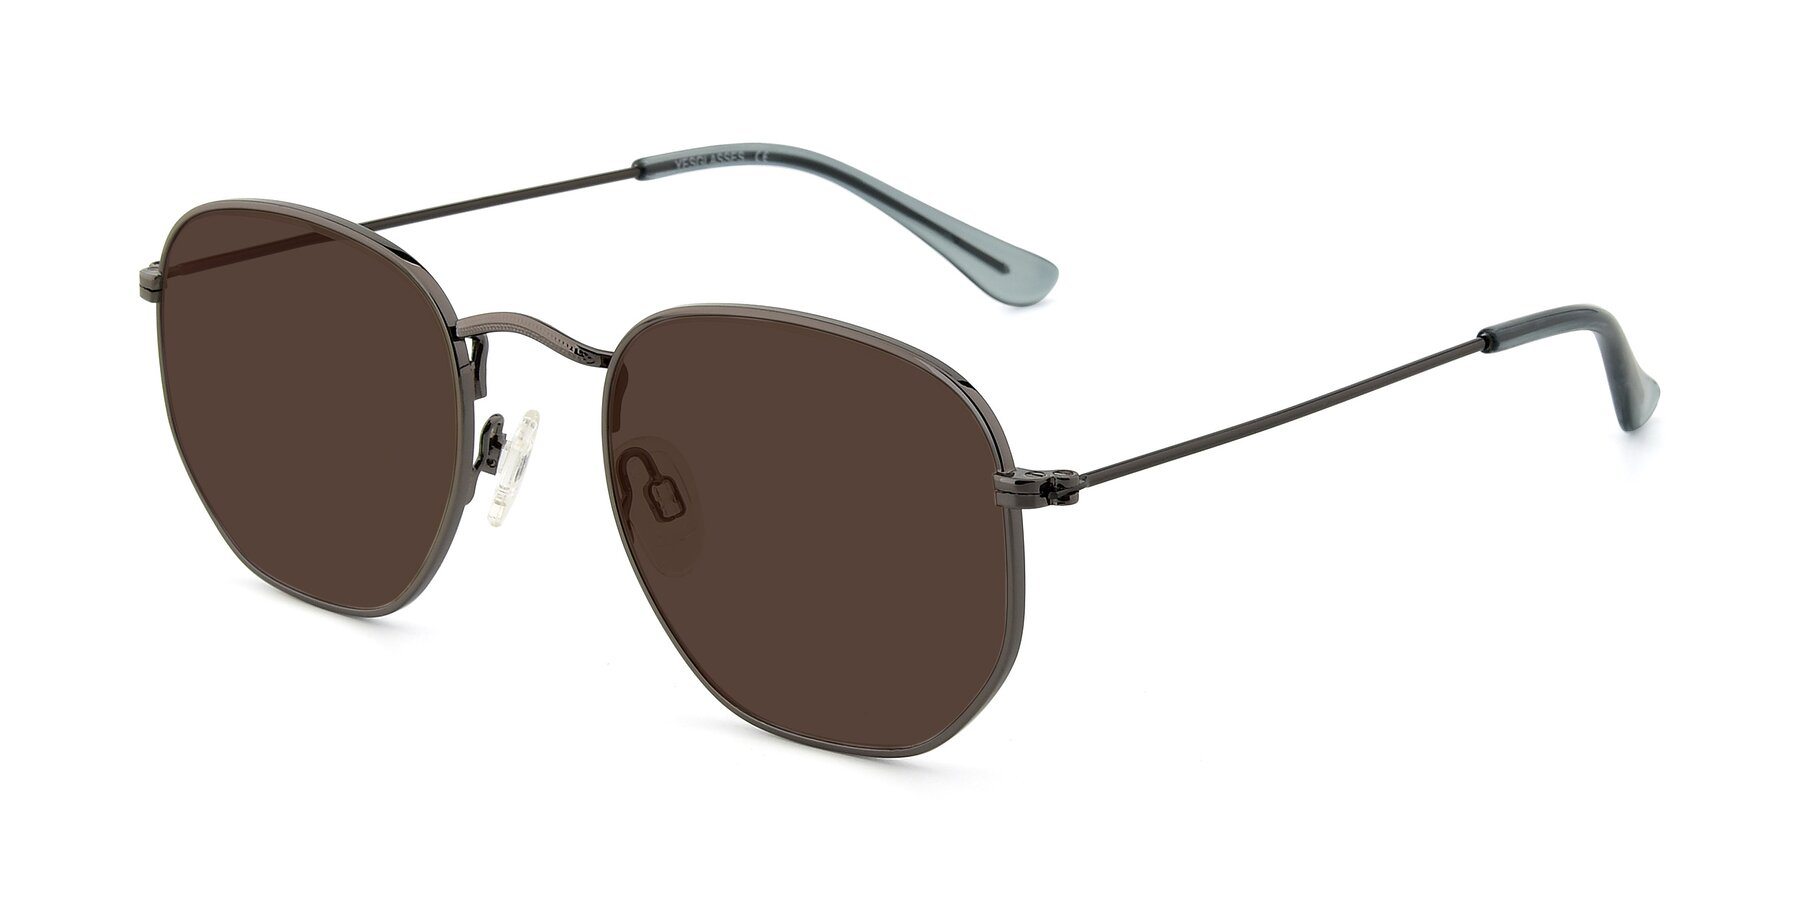 Angle of SSR1944 in Grey with Brown Tinted Lenses